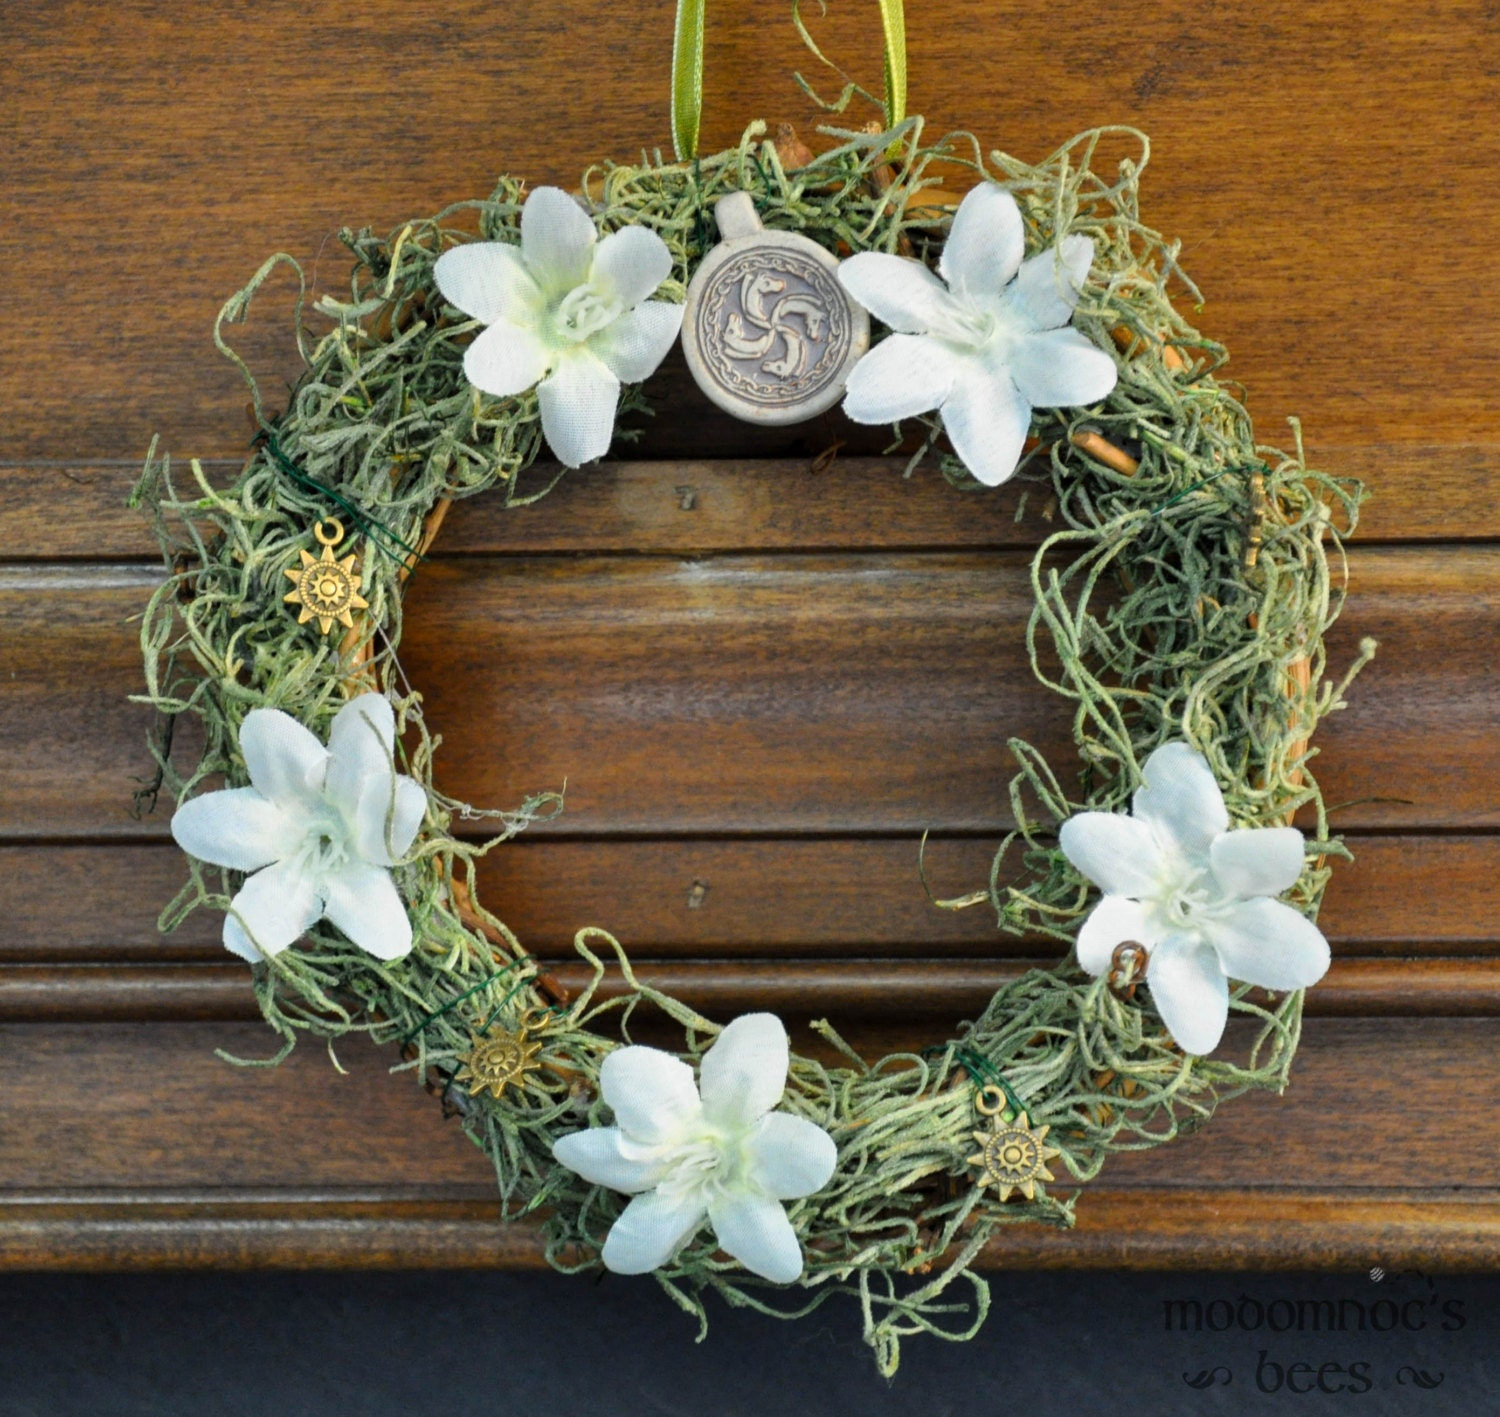 Rohan Simbelmyne Ringwreath Tolkien Inspired Wreath Featuring White